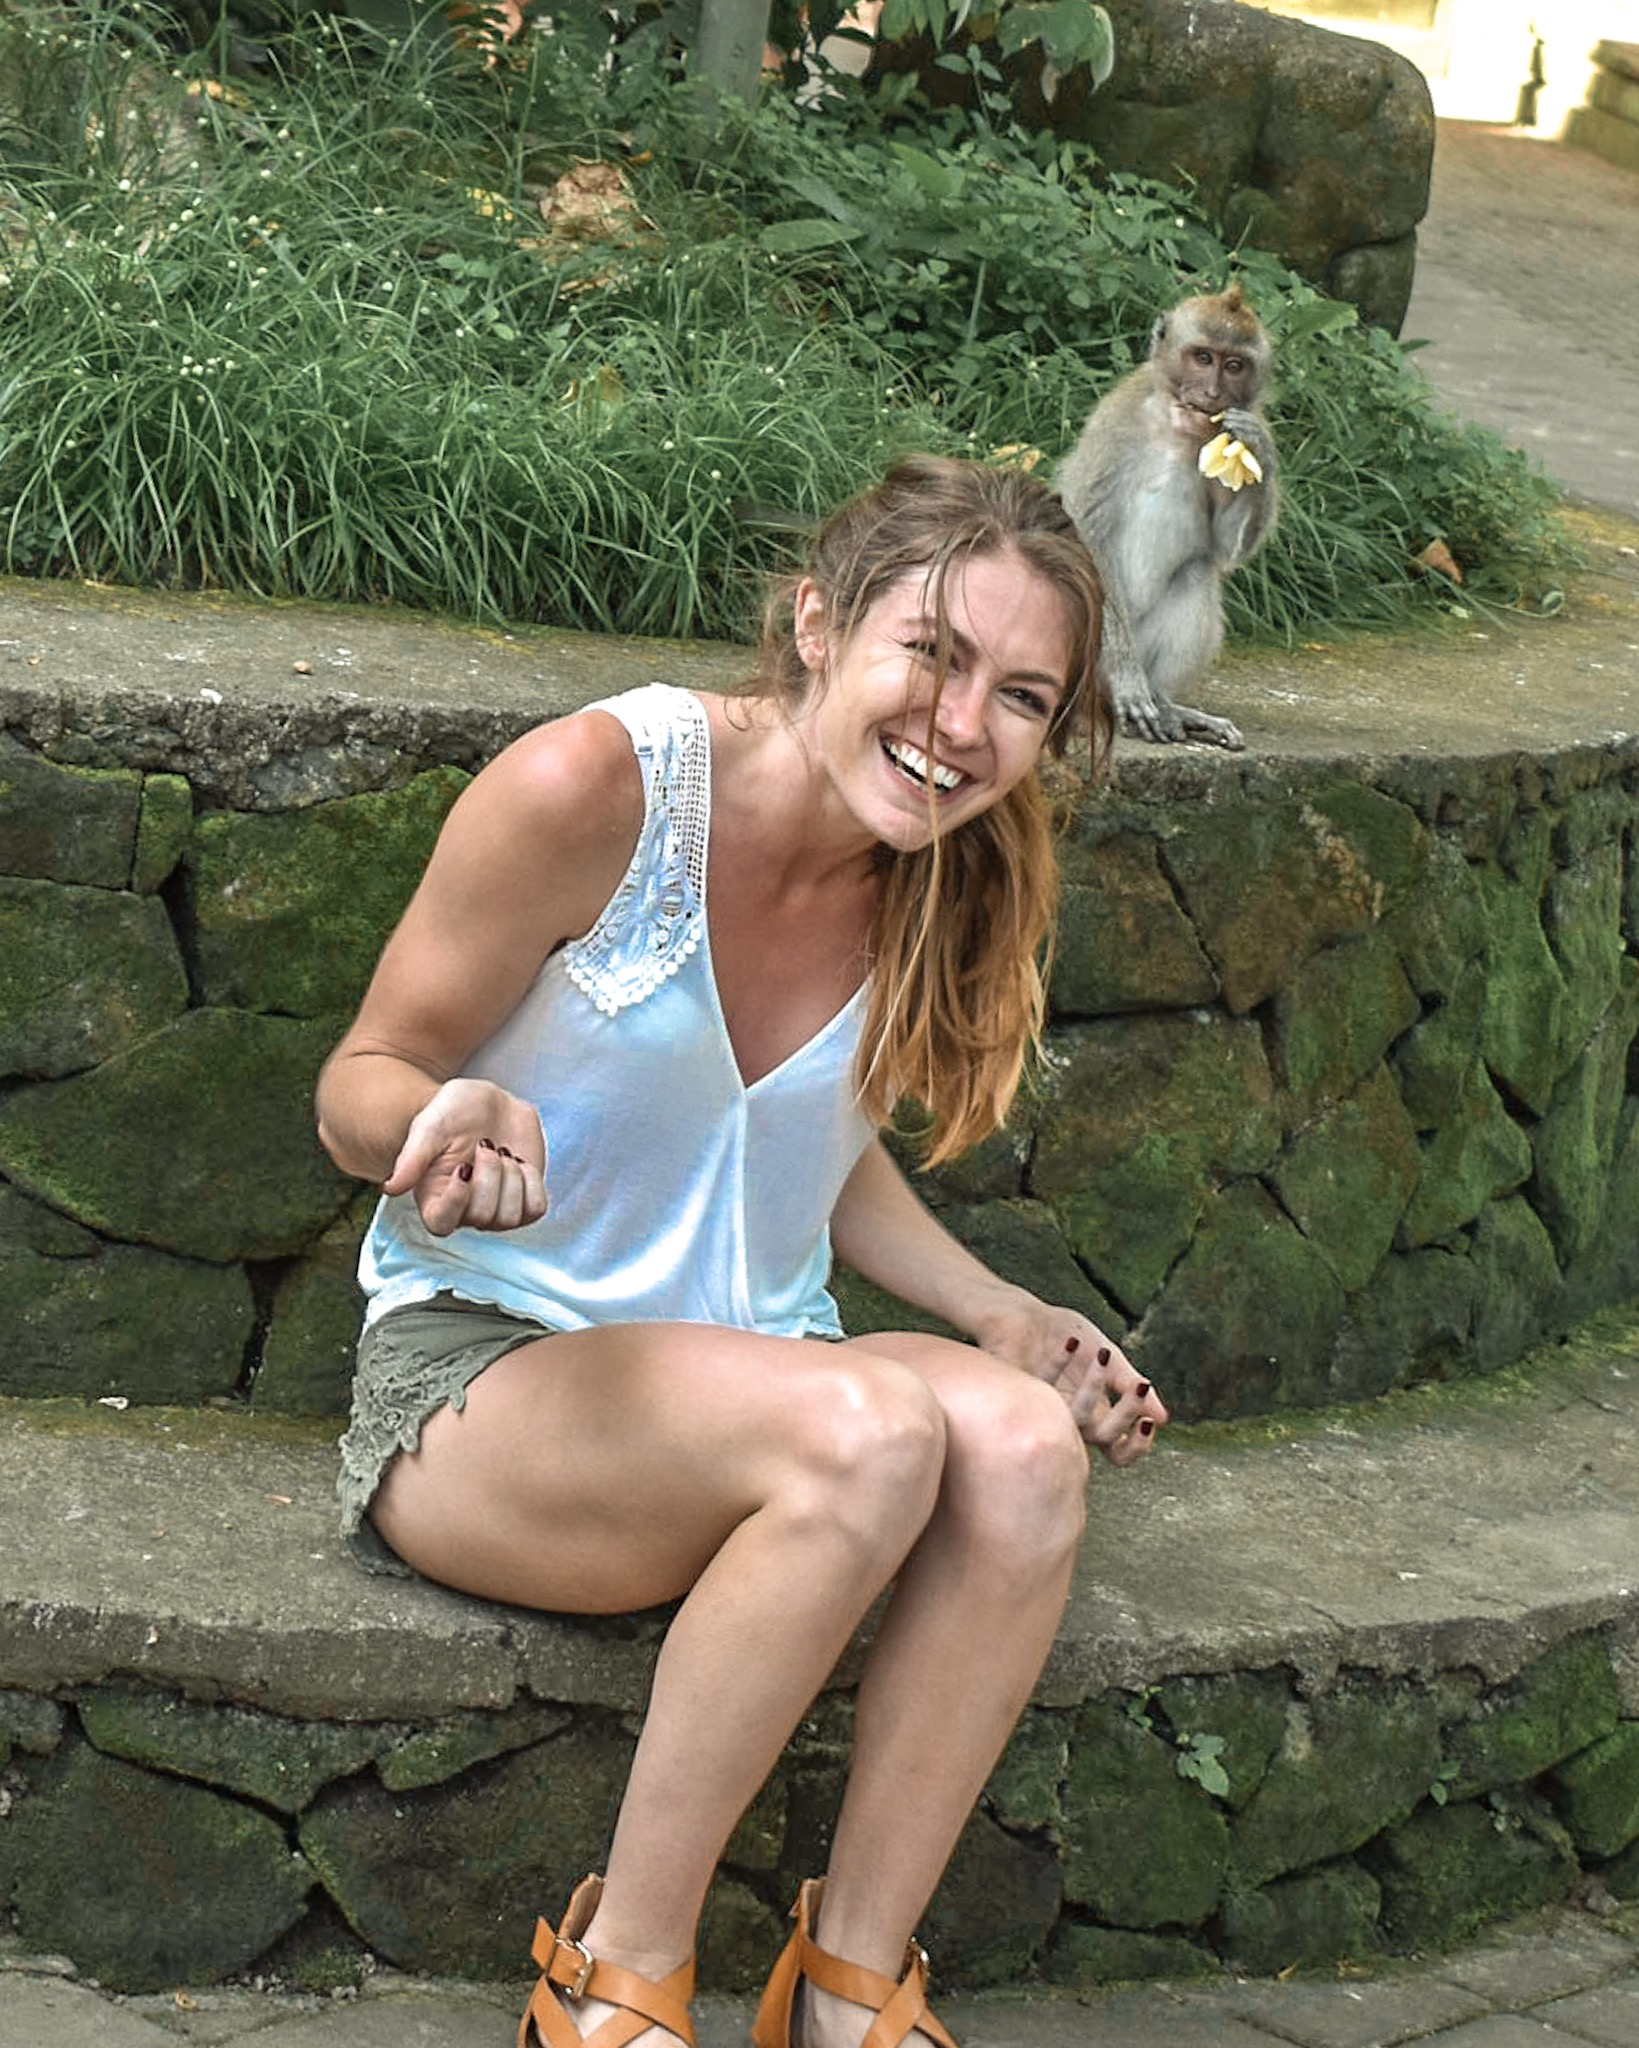 Monkey Steals Flower Out of Woman's Hair at the Ubud Monkey Forest